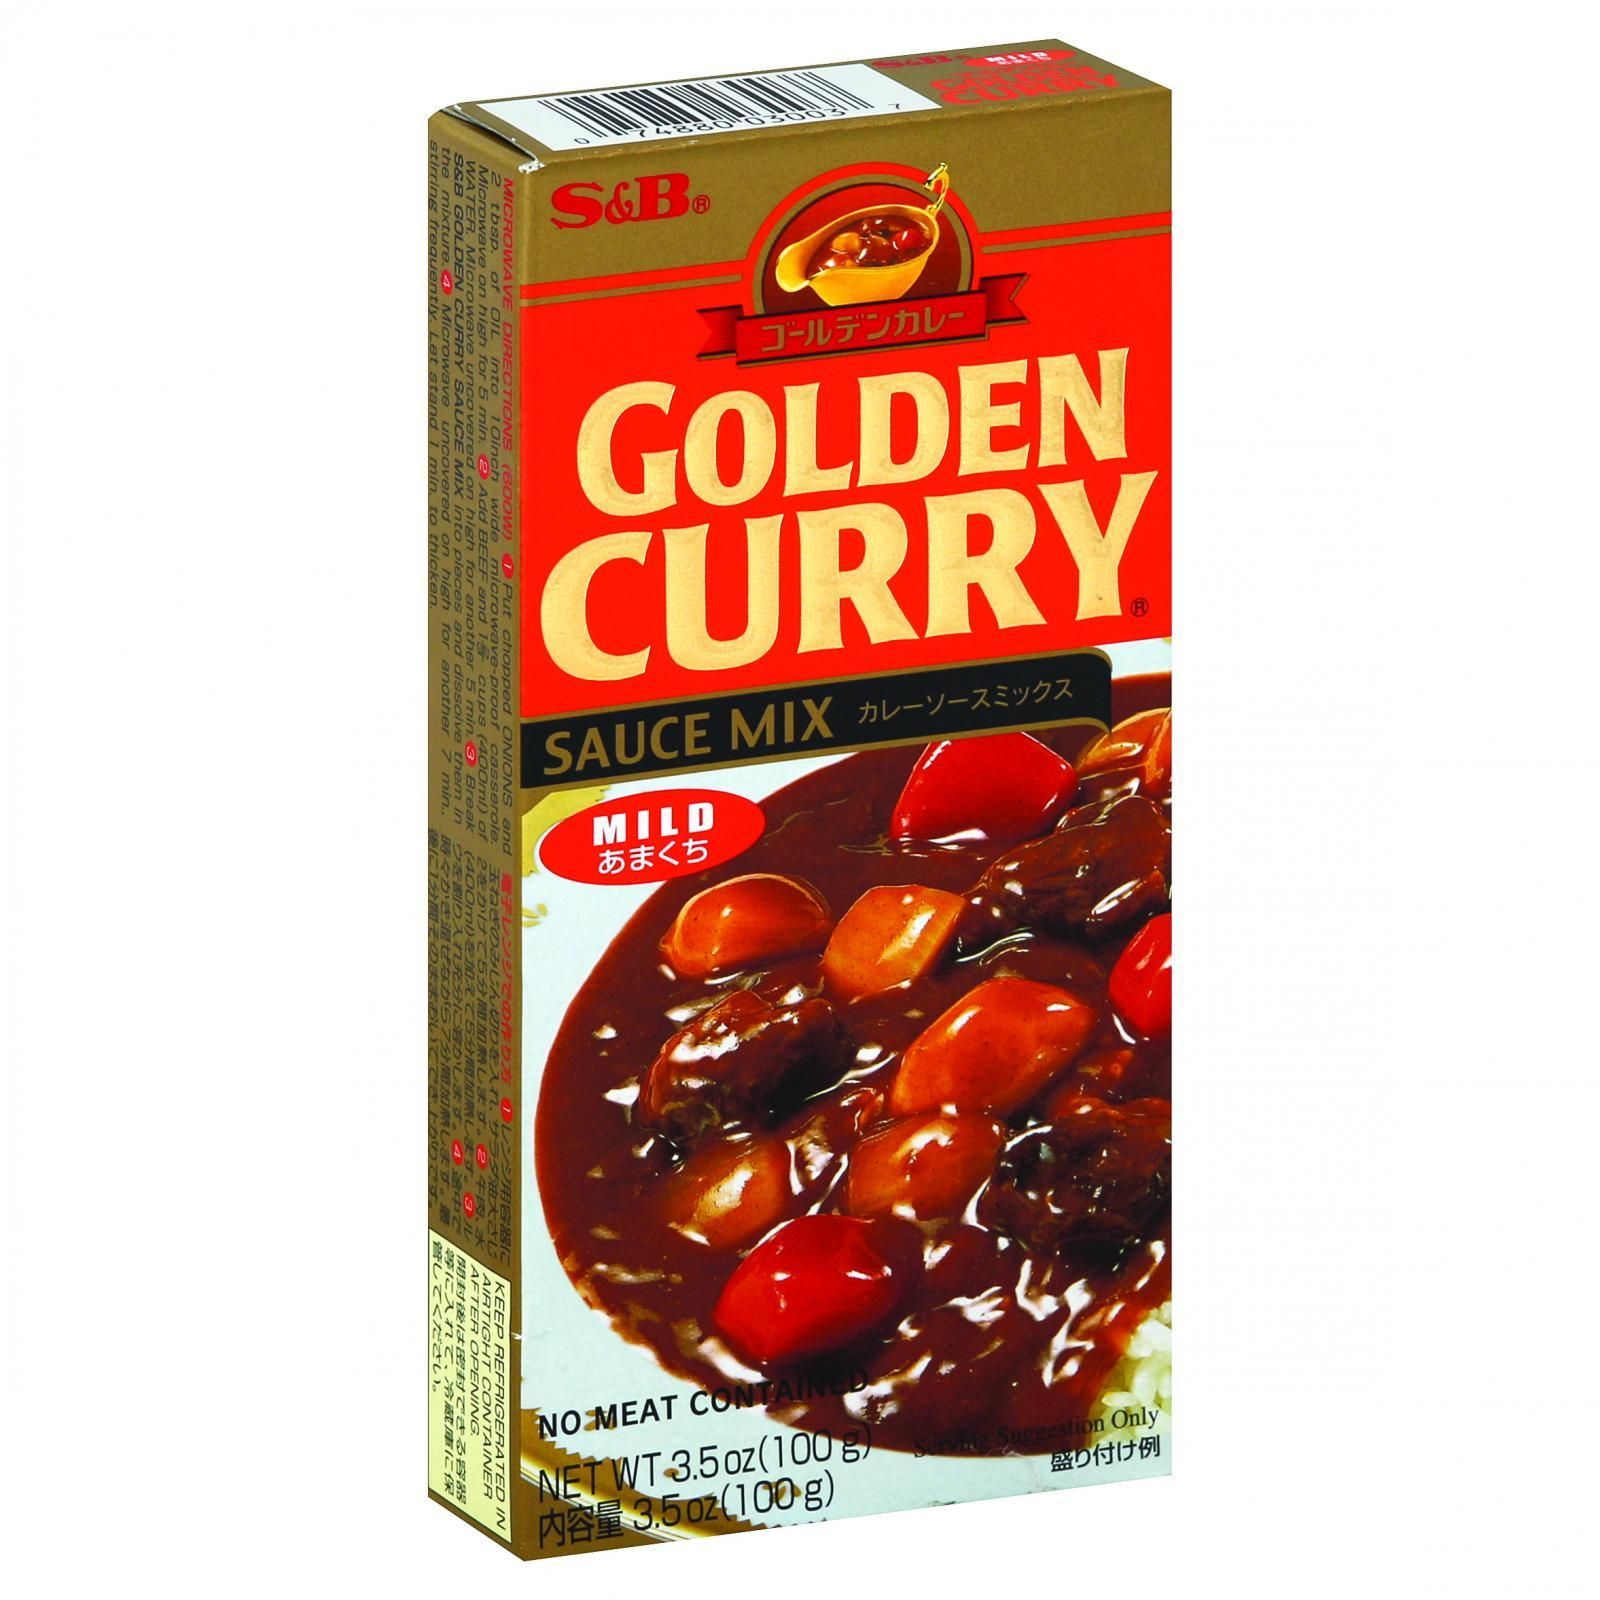 Sandb Sauce Mix - Golden Curry - Mild - 3.5 Oz - Case Of 12